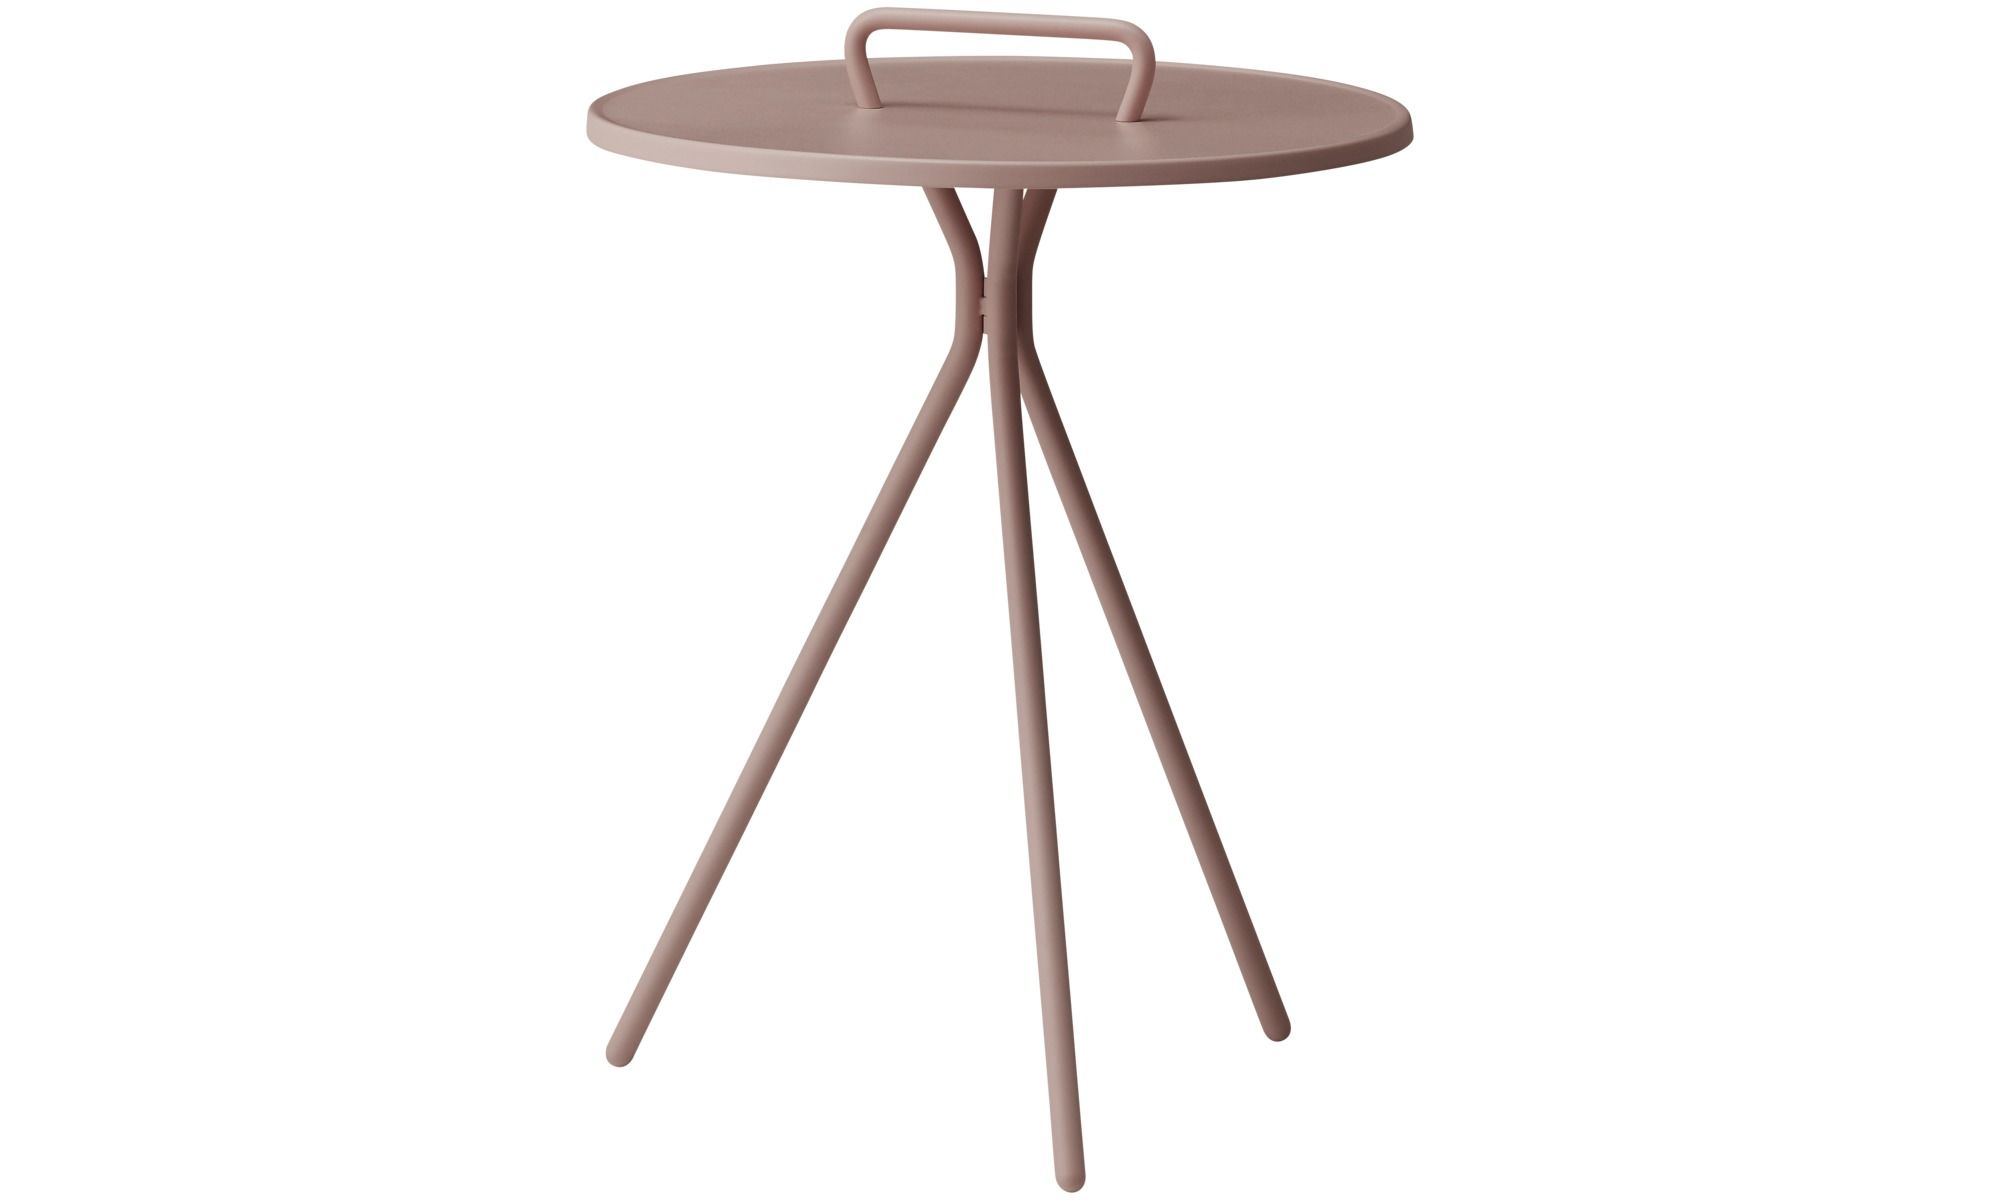 Table d'appoint Jersey -25%